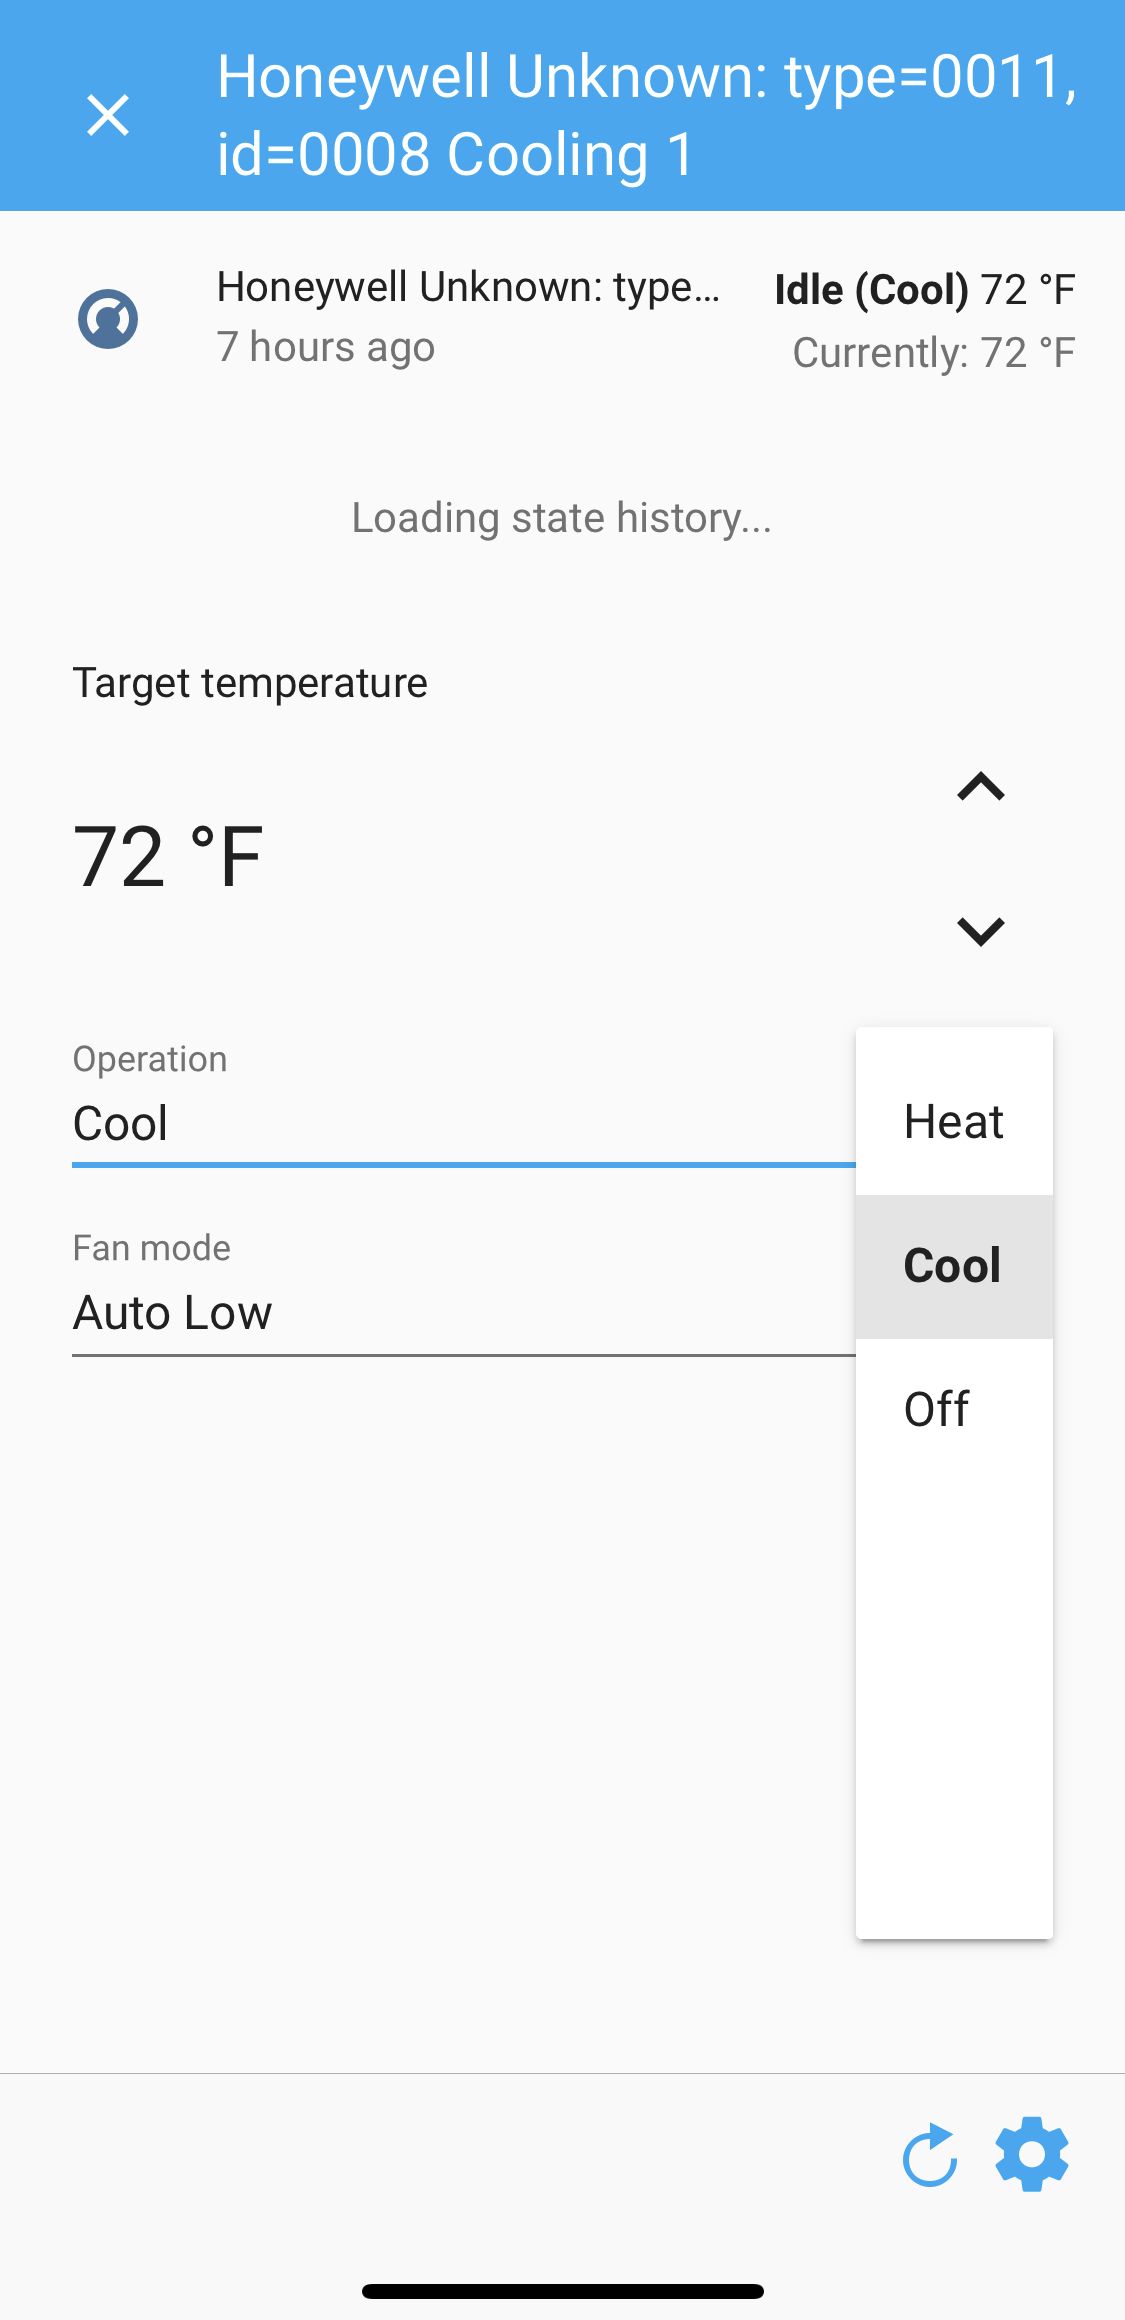 Multiple cards for a single physical device (thermostat